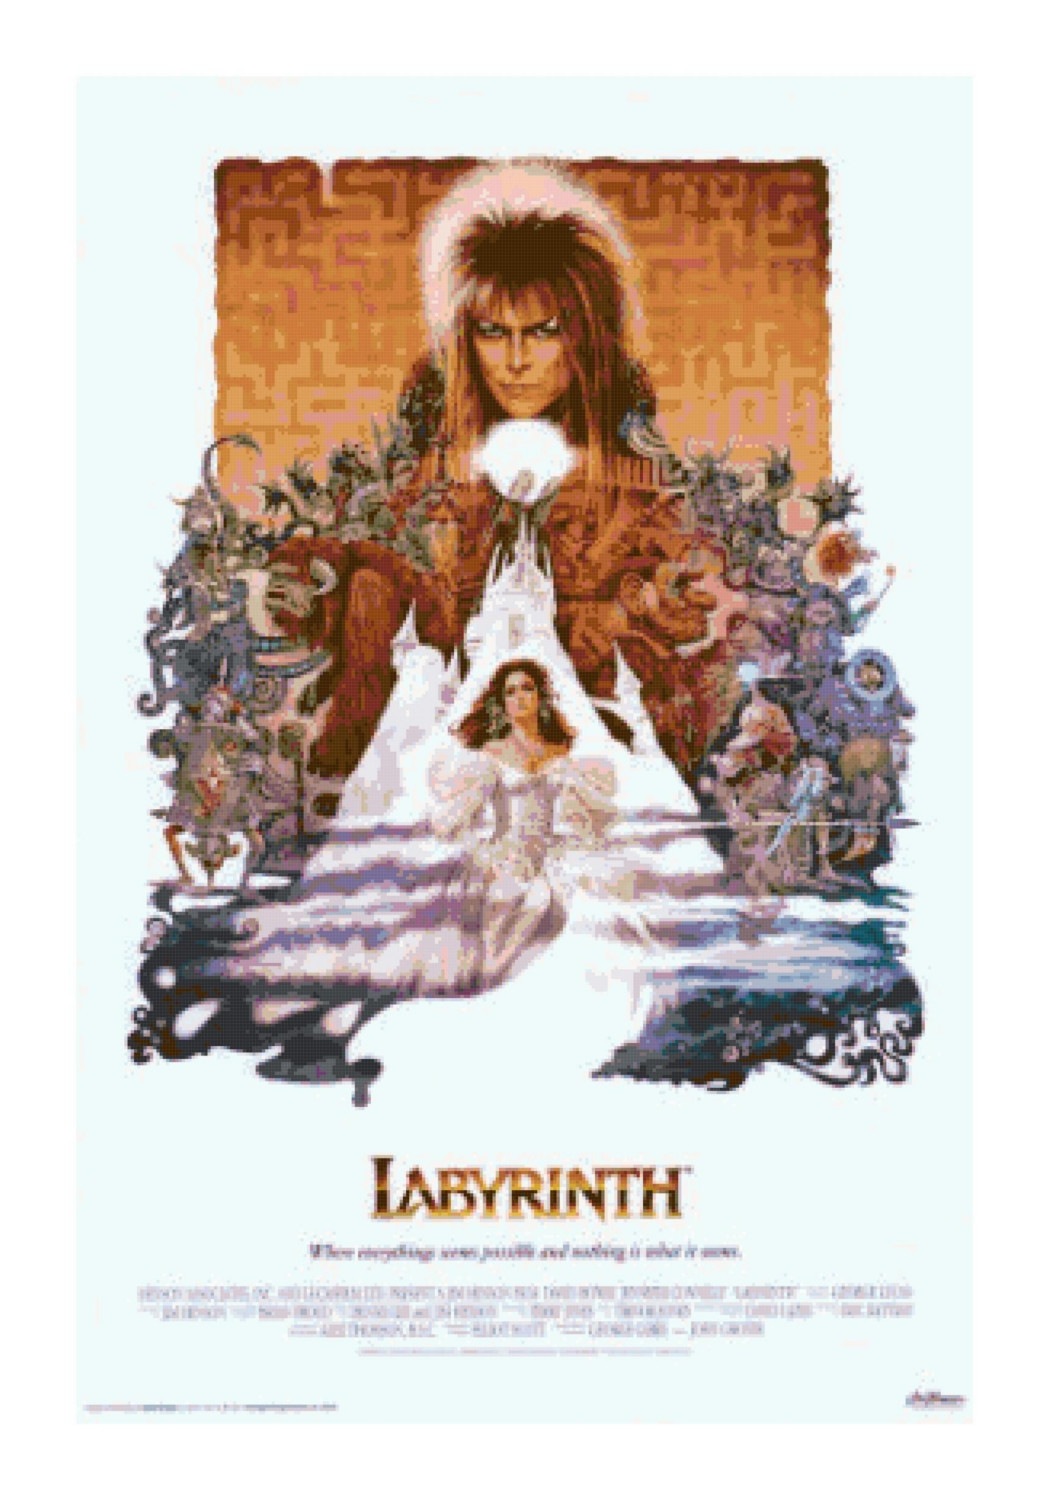 POPSICULTURE: 80s Movies: Labyrinth (1986) Labyrinth 1986